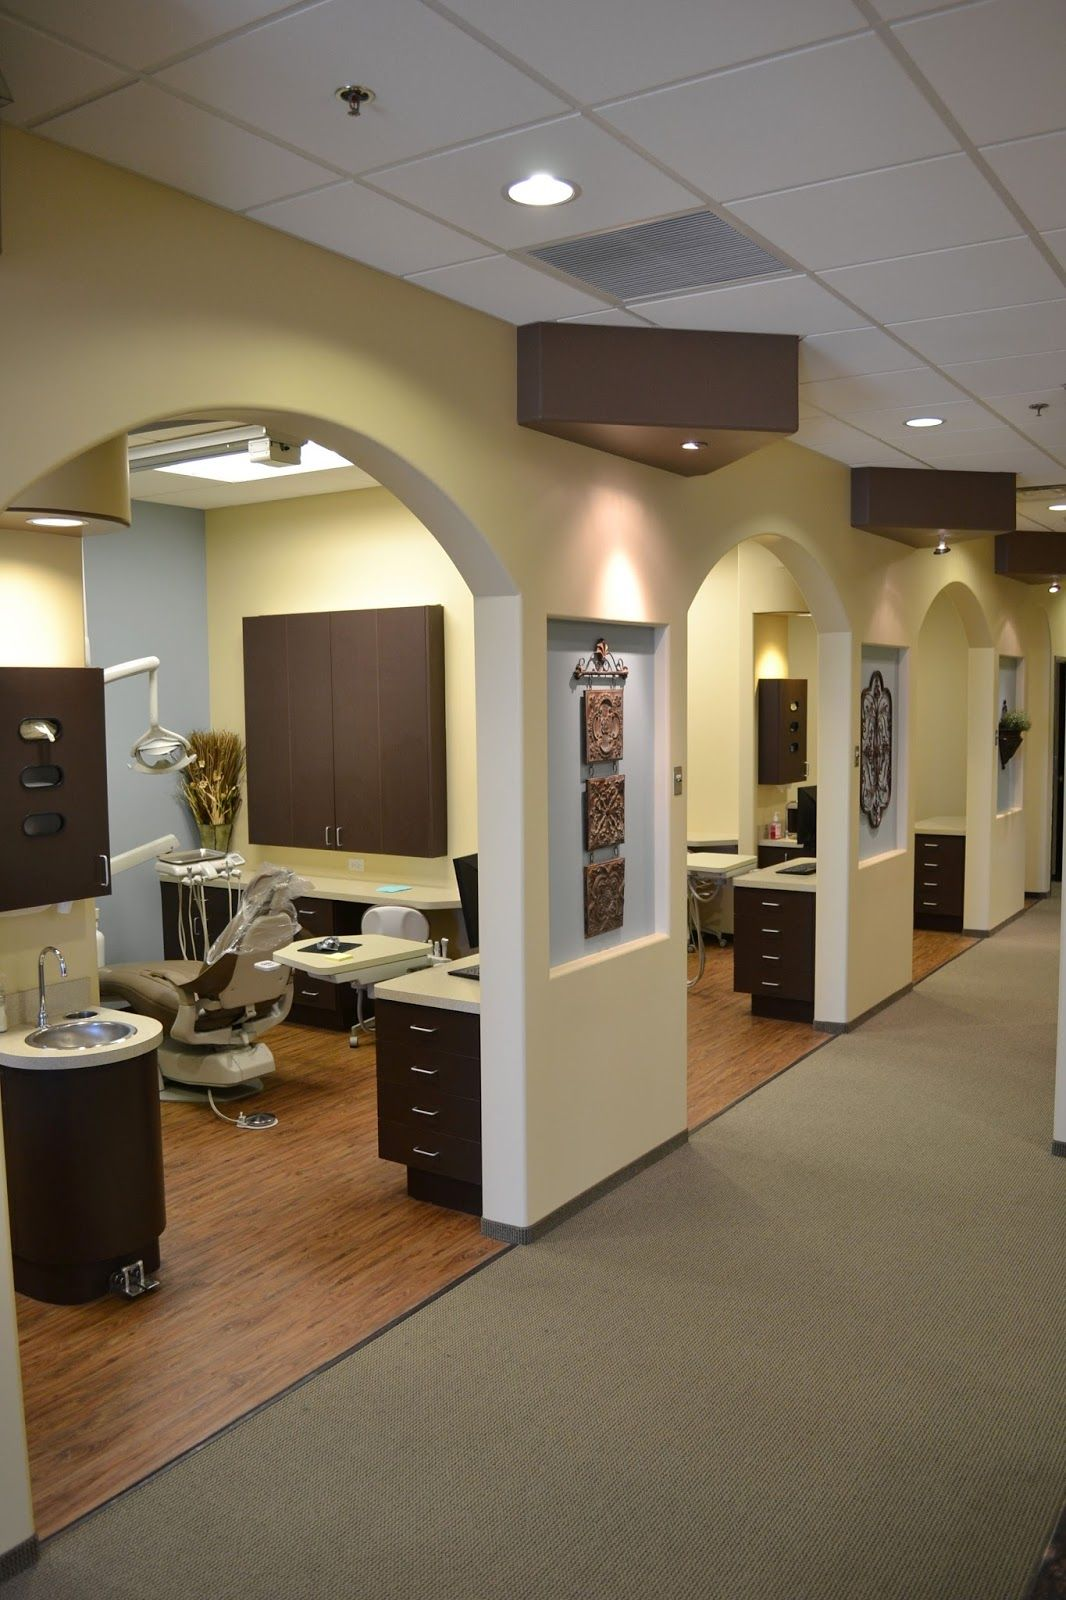 Dental office photos astonishing white and grey color for Office design photos